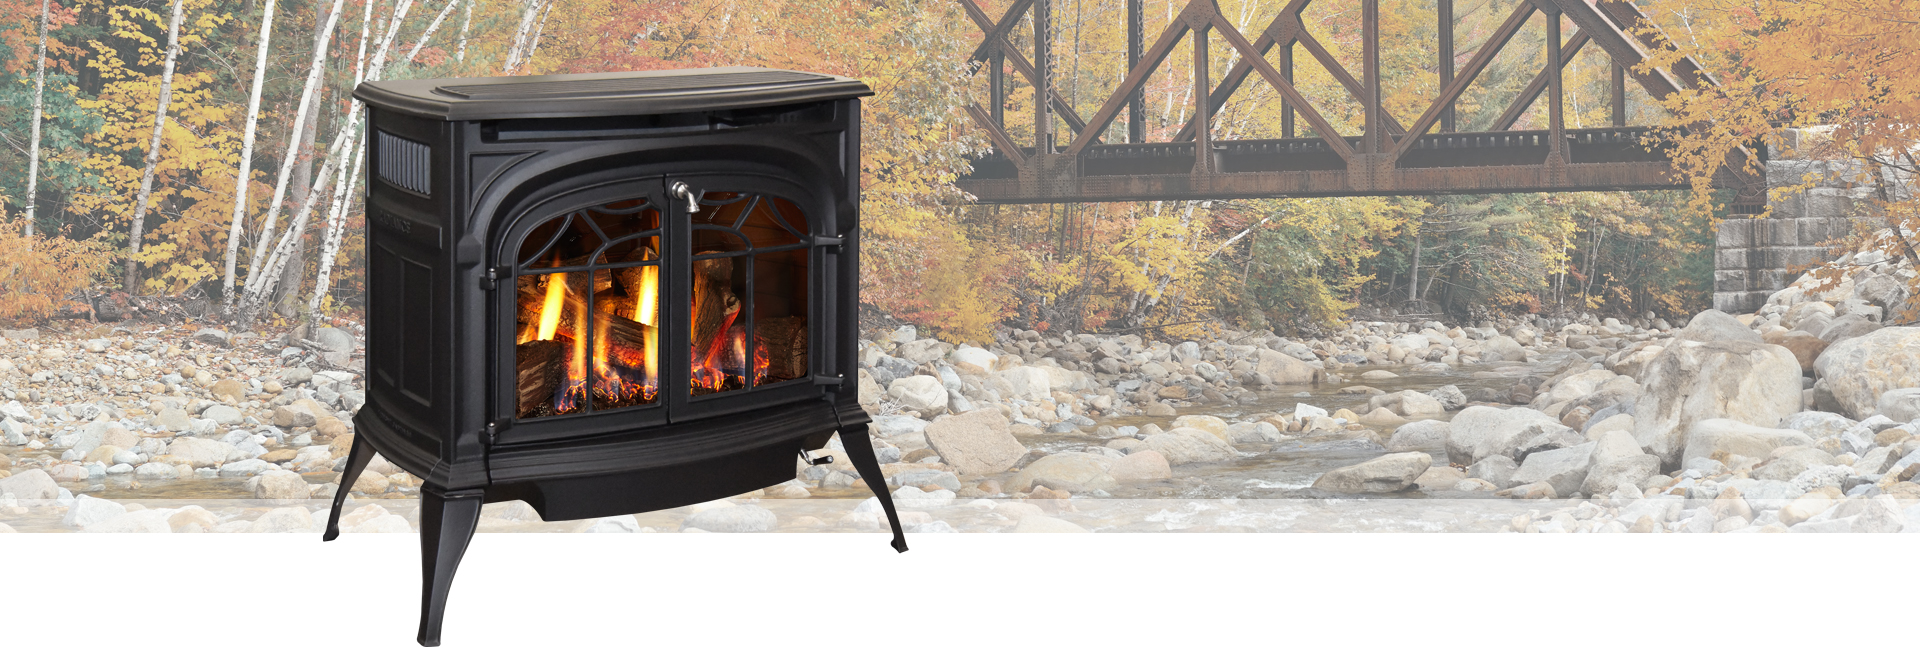 Vermont Castings Radiance Vf Georgetown Fireplace And Patio